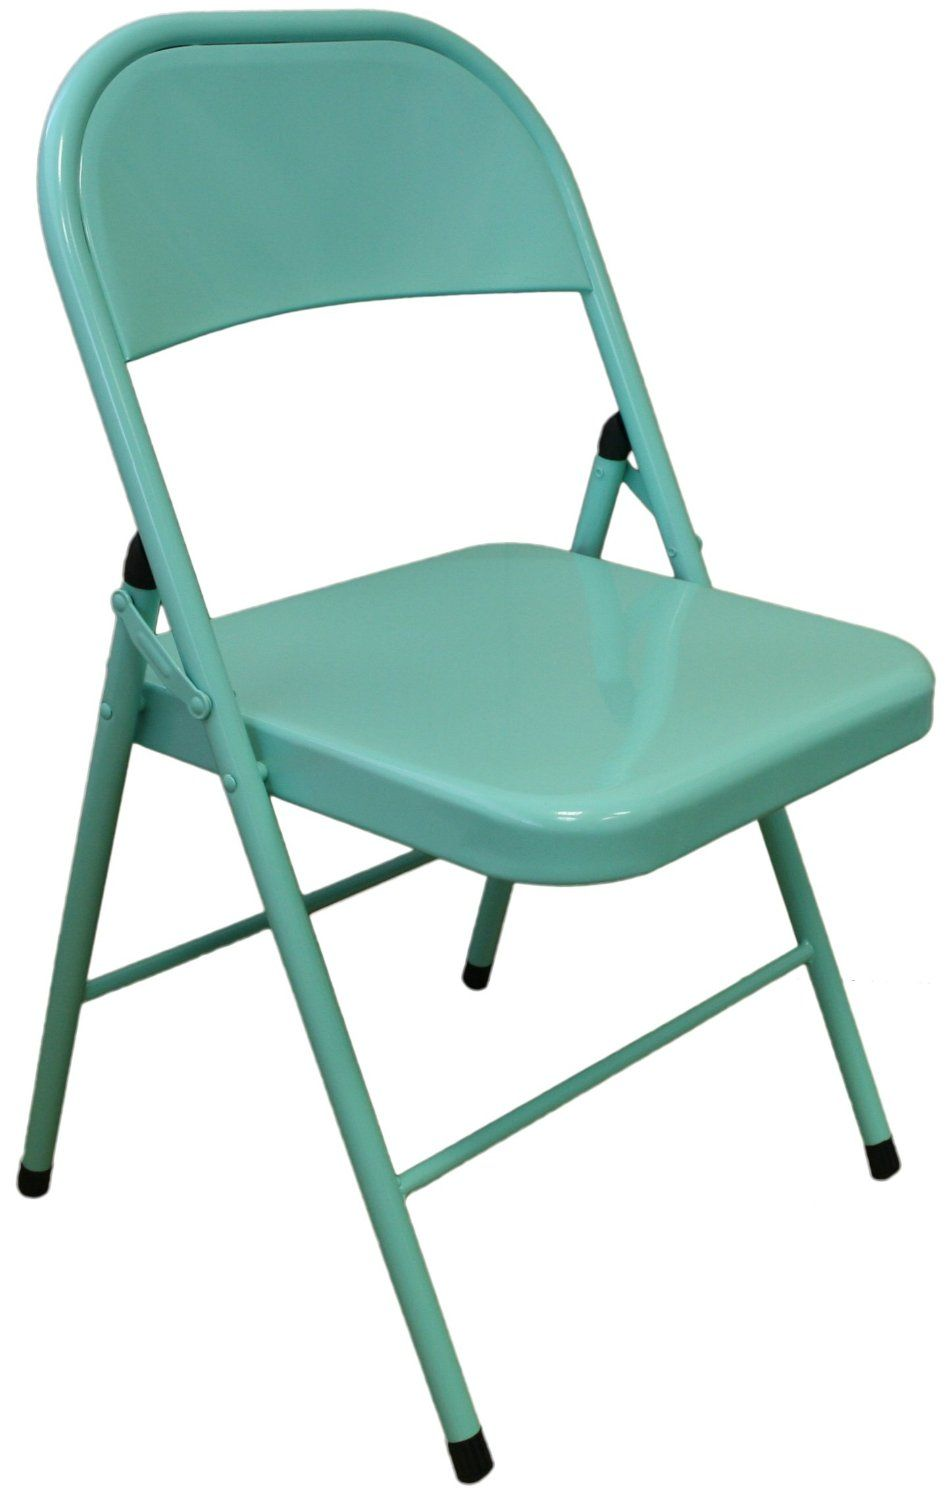 Admirable Harbour Housewares Duck Egg Blue Metal Folding Desk Chair Machost Co Dining Chair Design Ideas Machostcouk